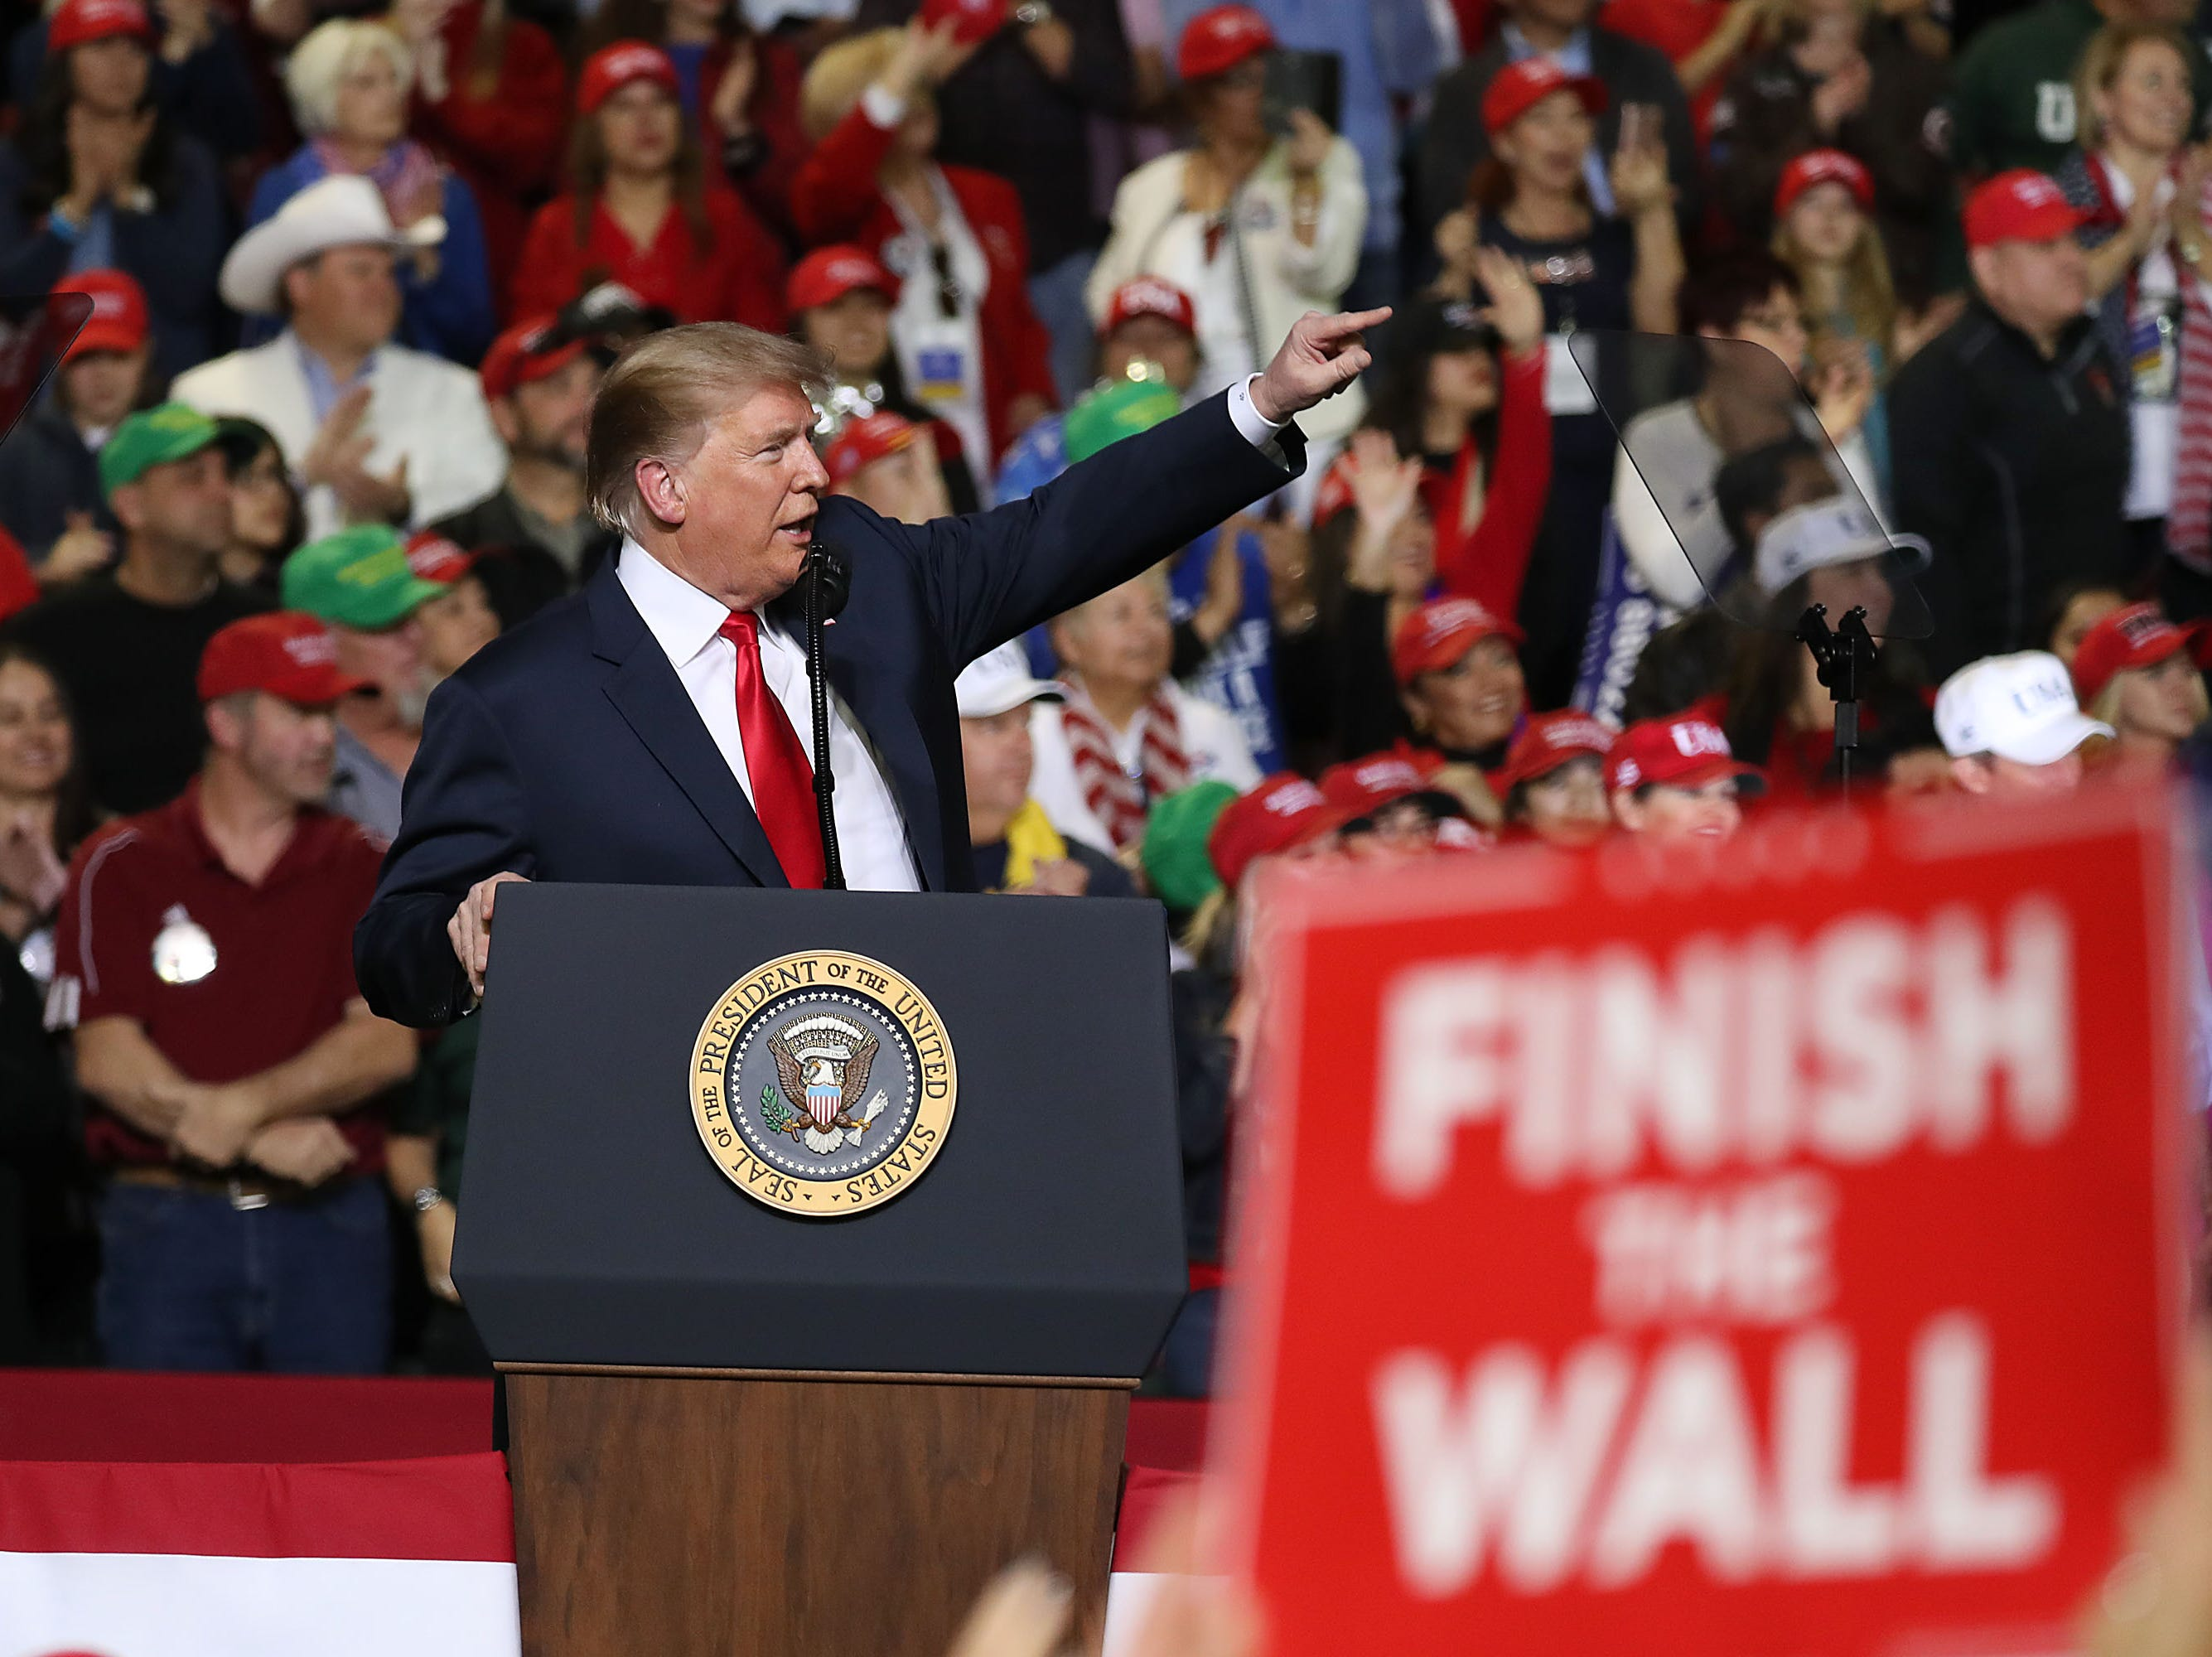 President Trump speaks at a rally in El Paso, Texas.